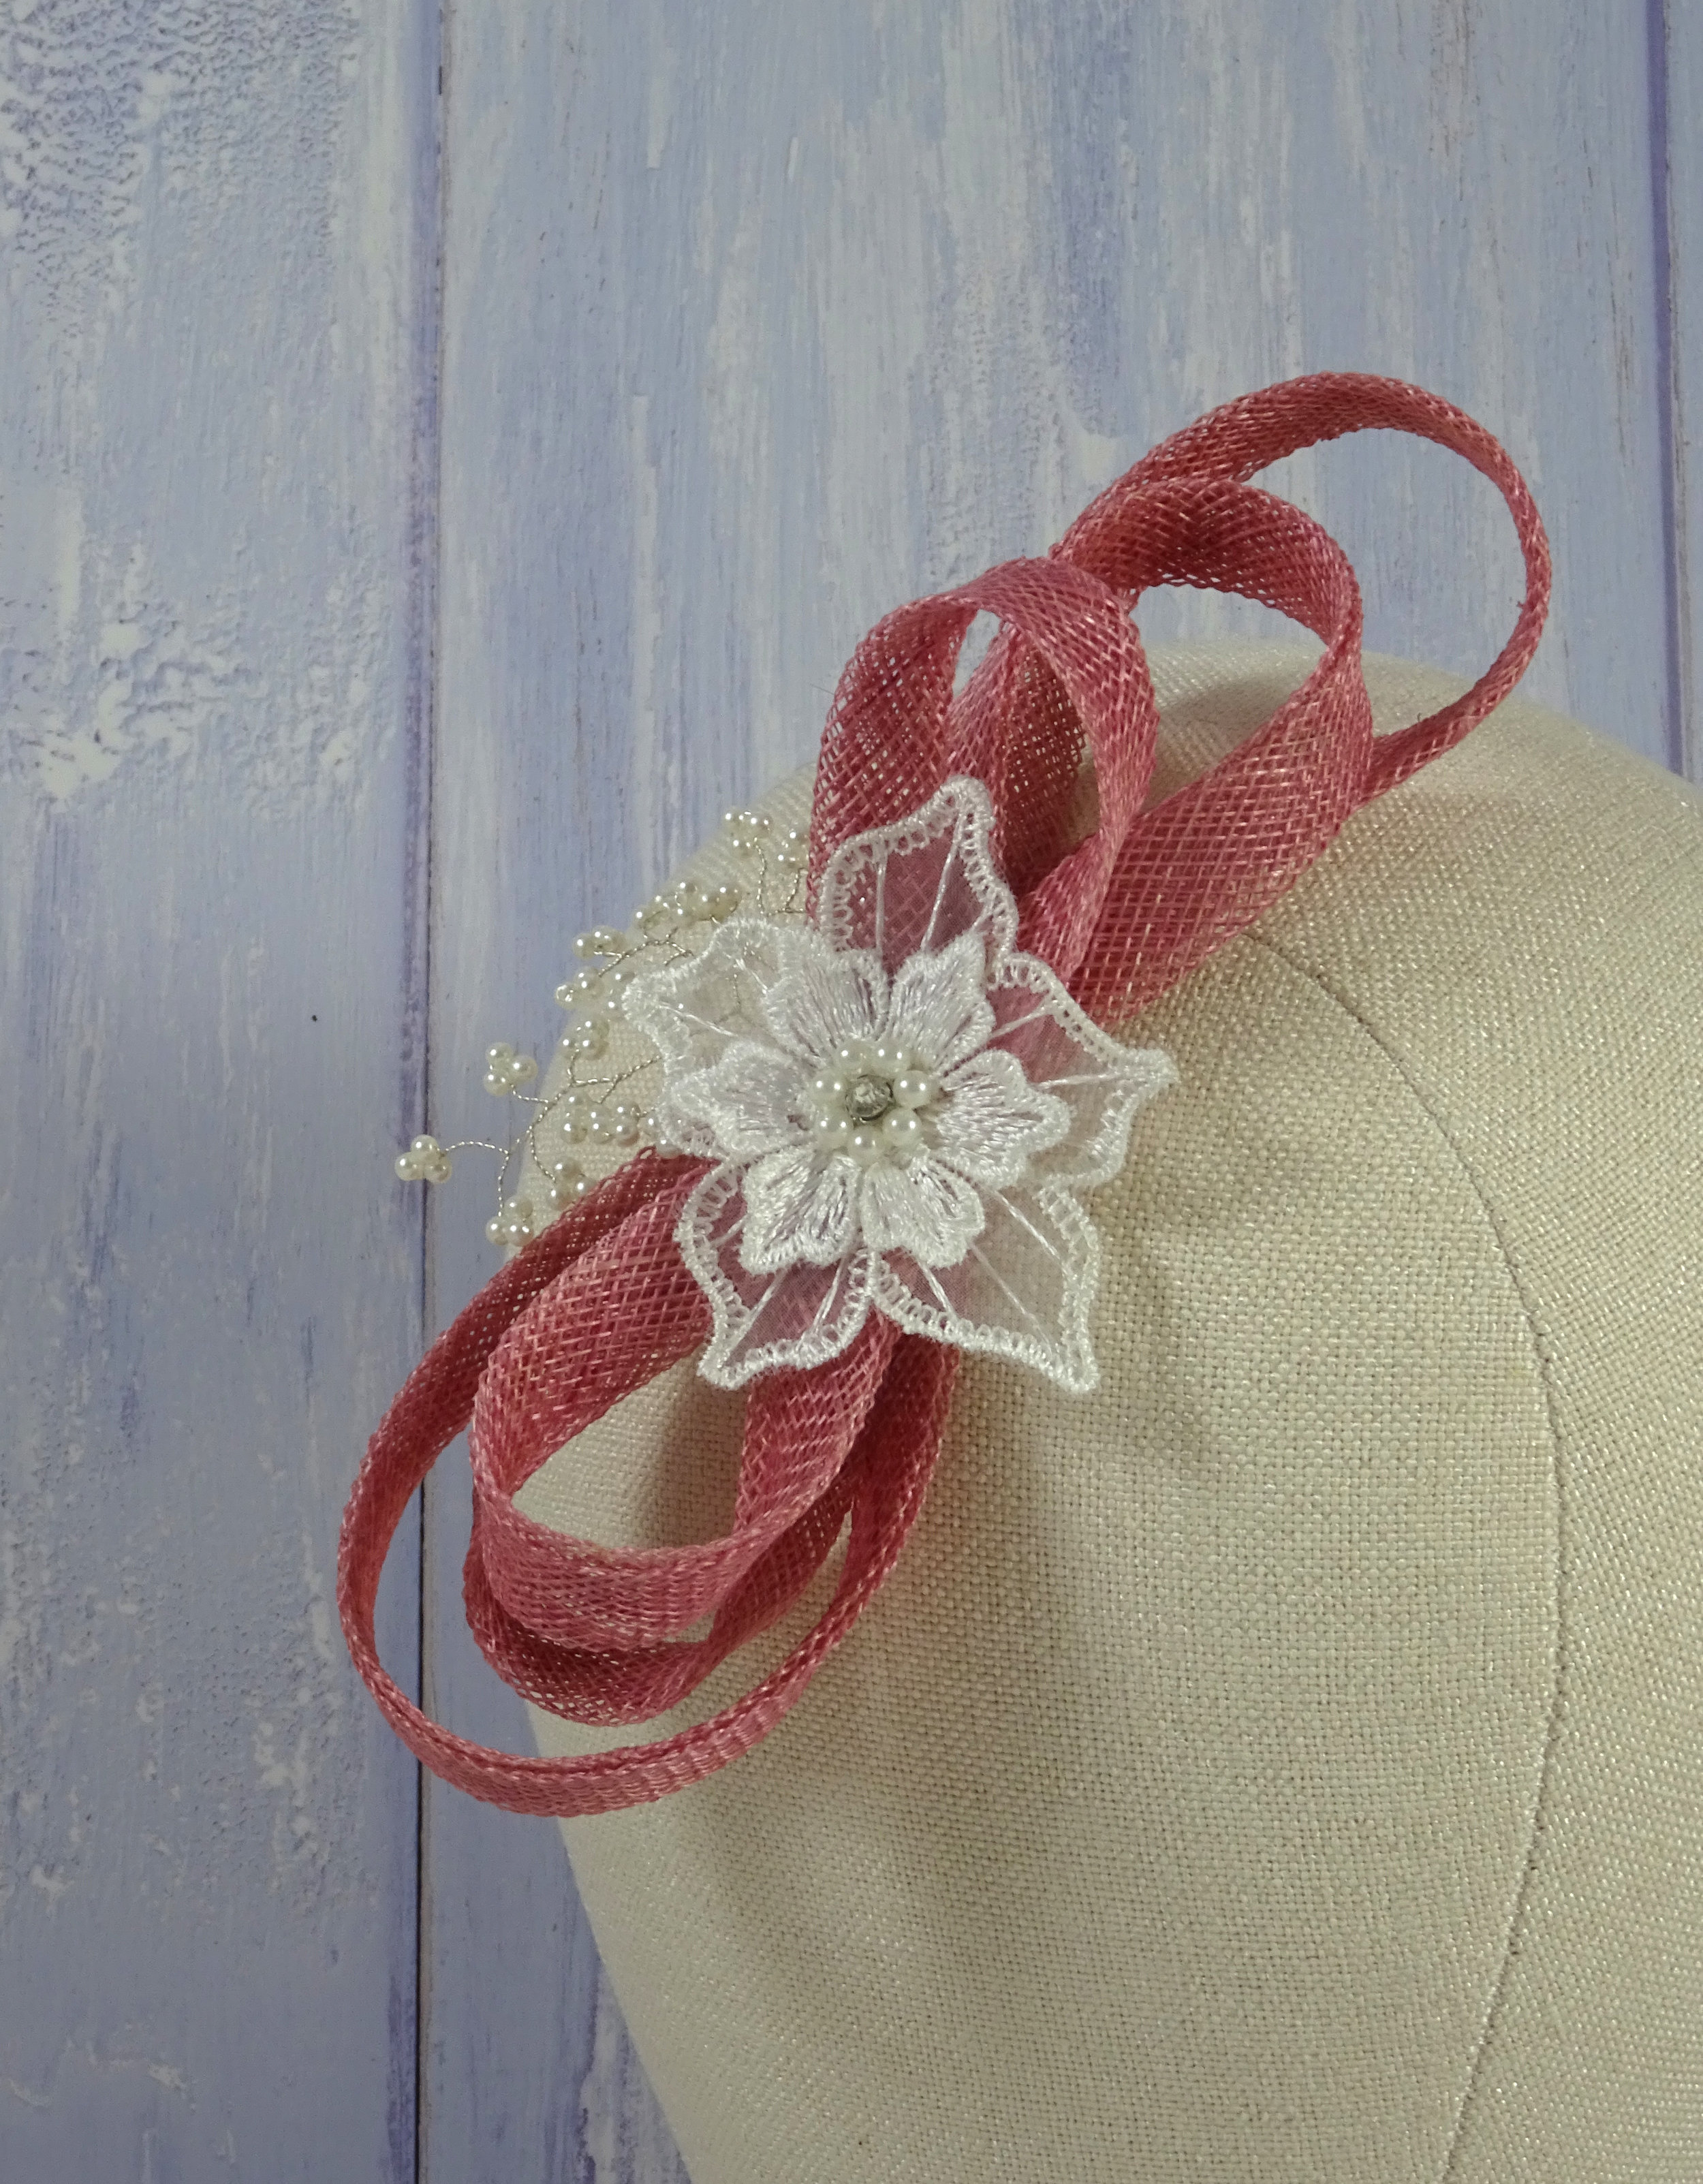 learn to make your own fascinator kits crafts.JPG